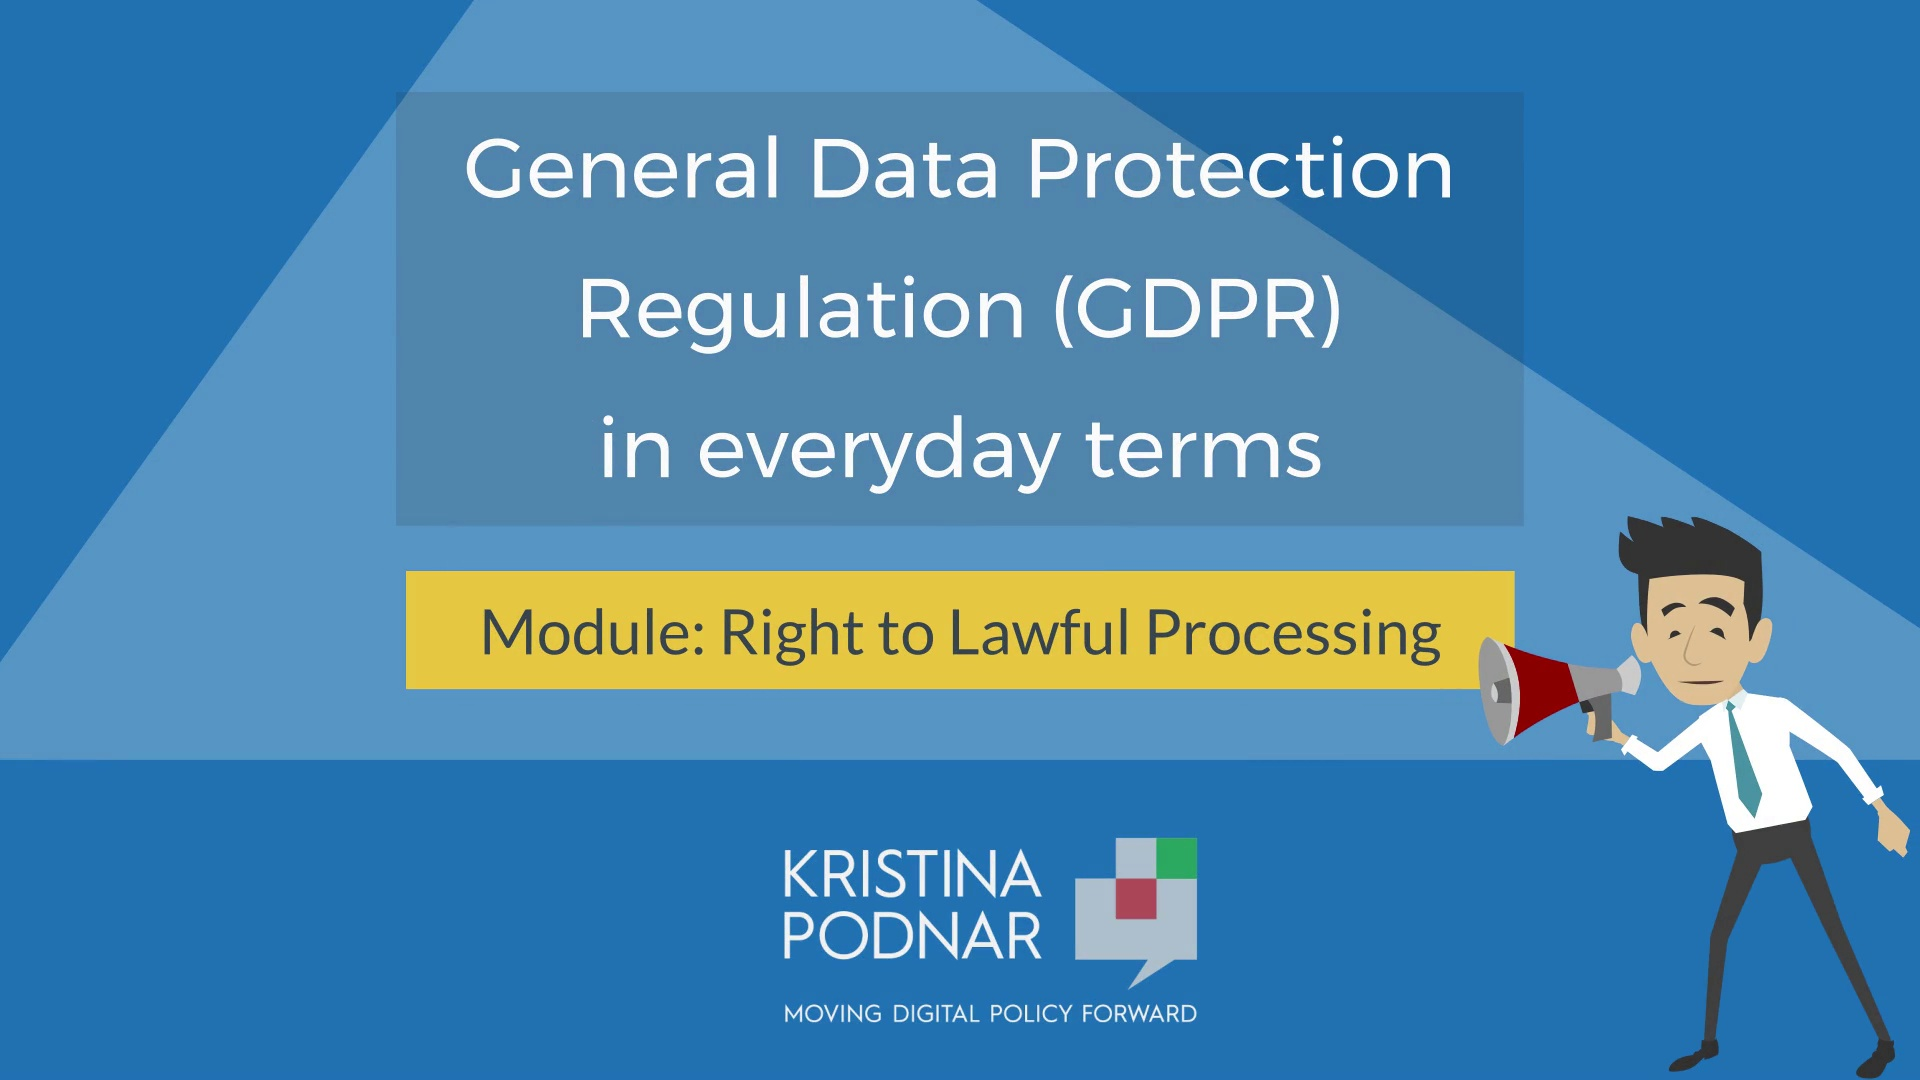 GDPR: Right to Lawful Processing